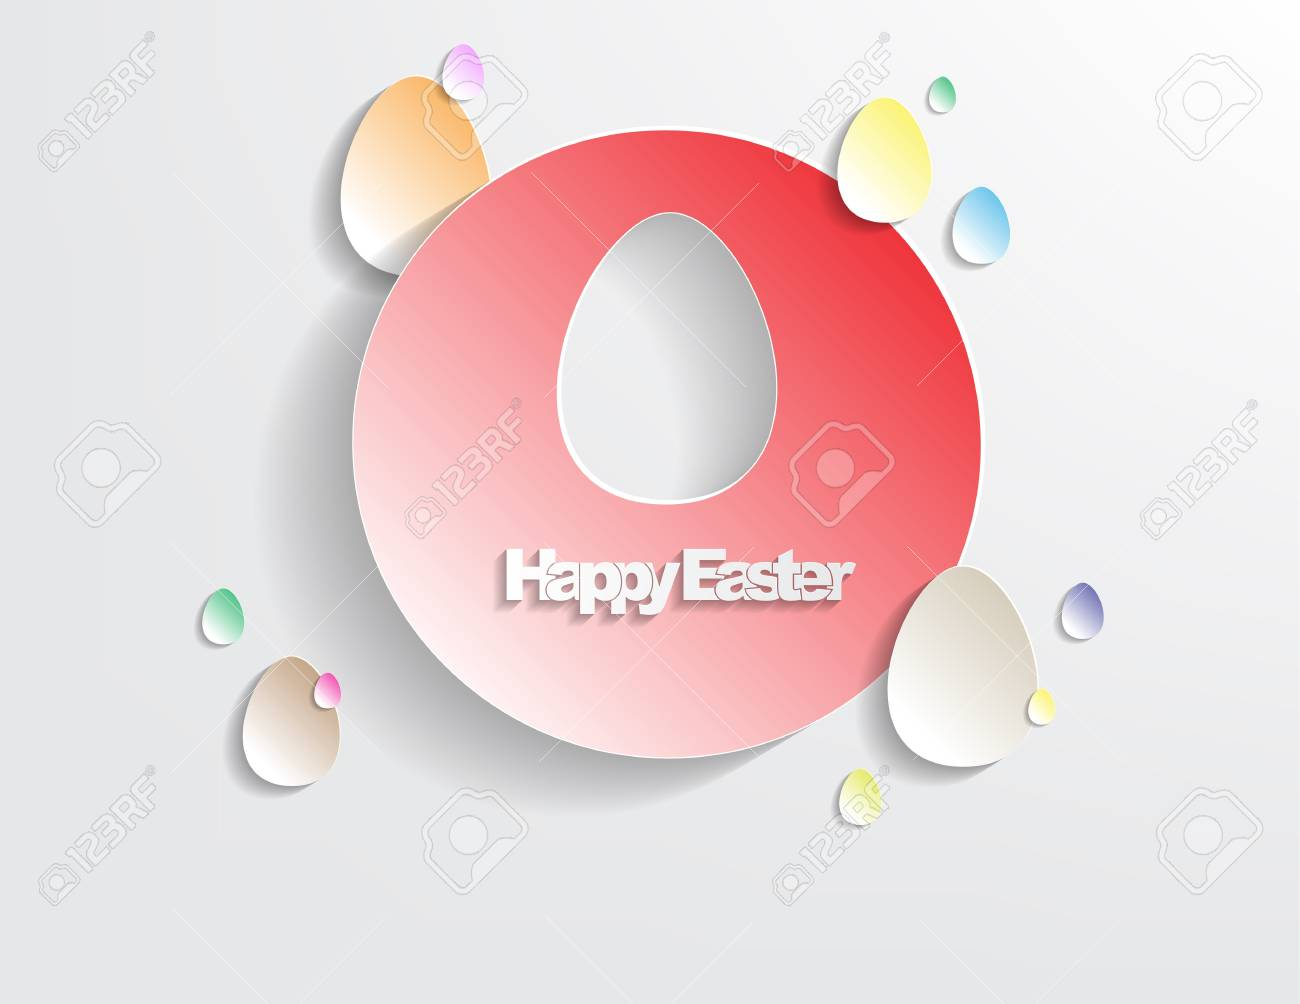 Happy Easter Background with sticker eggs, simple background Stock Vector - 17513552